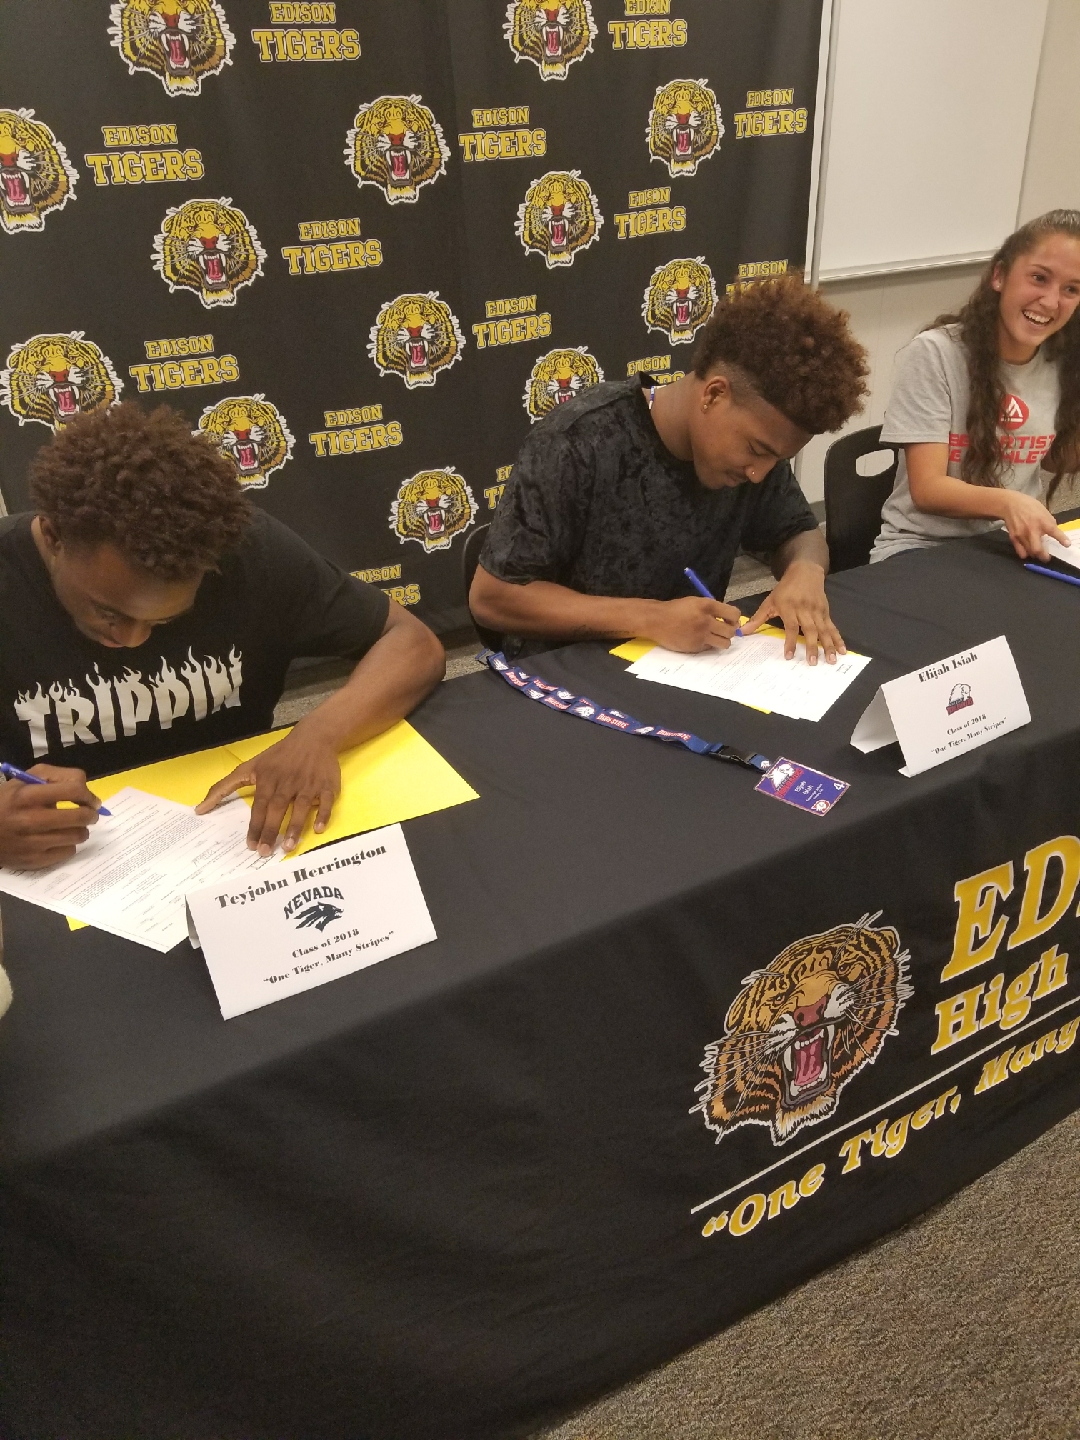 Edison student-athletes sign their letters of intent. From left to right:{&amp;nbsp;}Teyjohn Herrington, football, University of Nevada; Elijah Isiah, football, Dixie State; Reyna Valencia, soccer, Academy of Art University.<p></p>